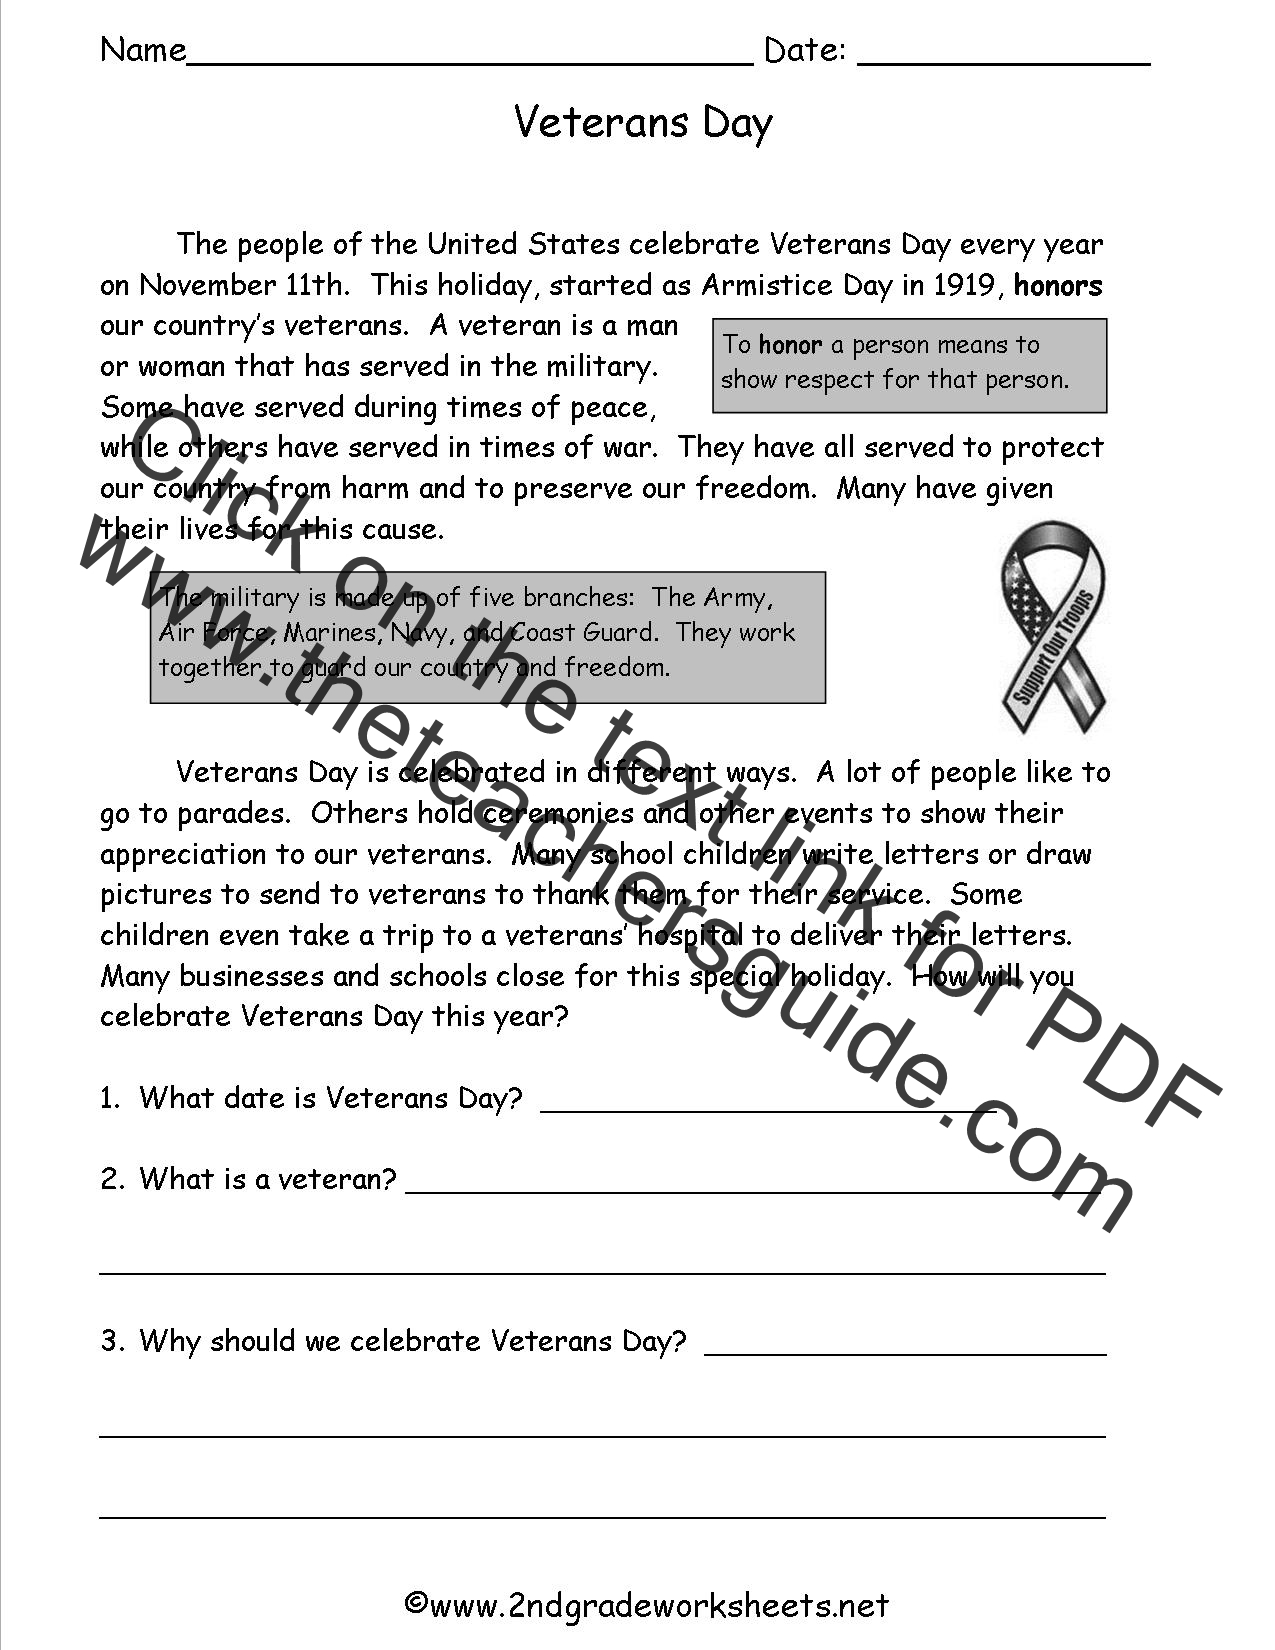 Printables Veterans Day Worksheets veterans day worksheets worksheets